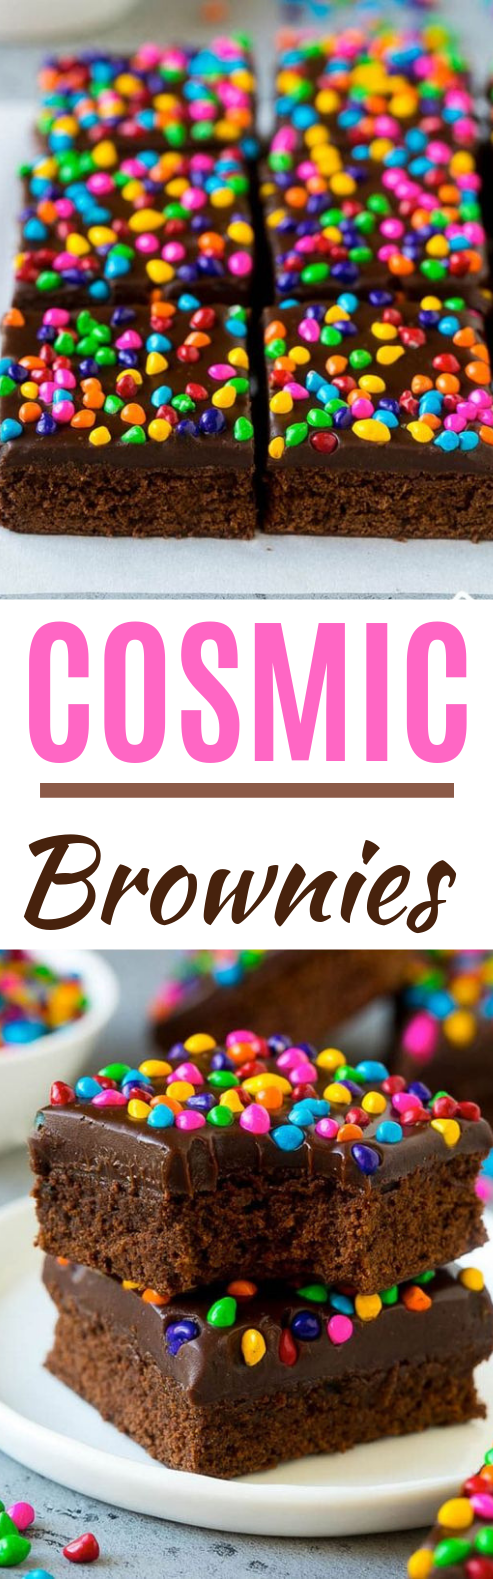 Cosmic Brownies #desserts #brownies